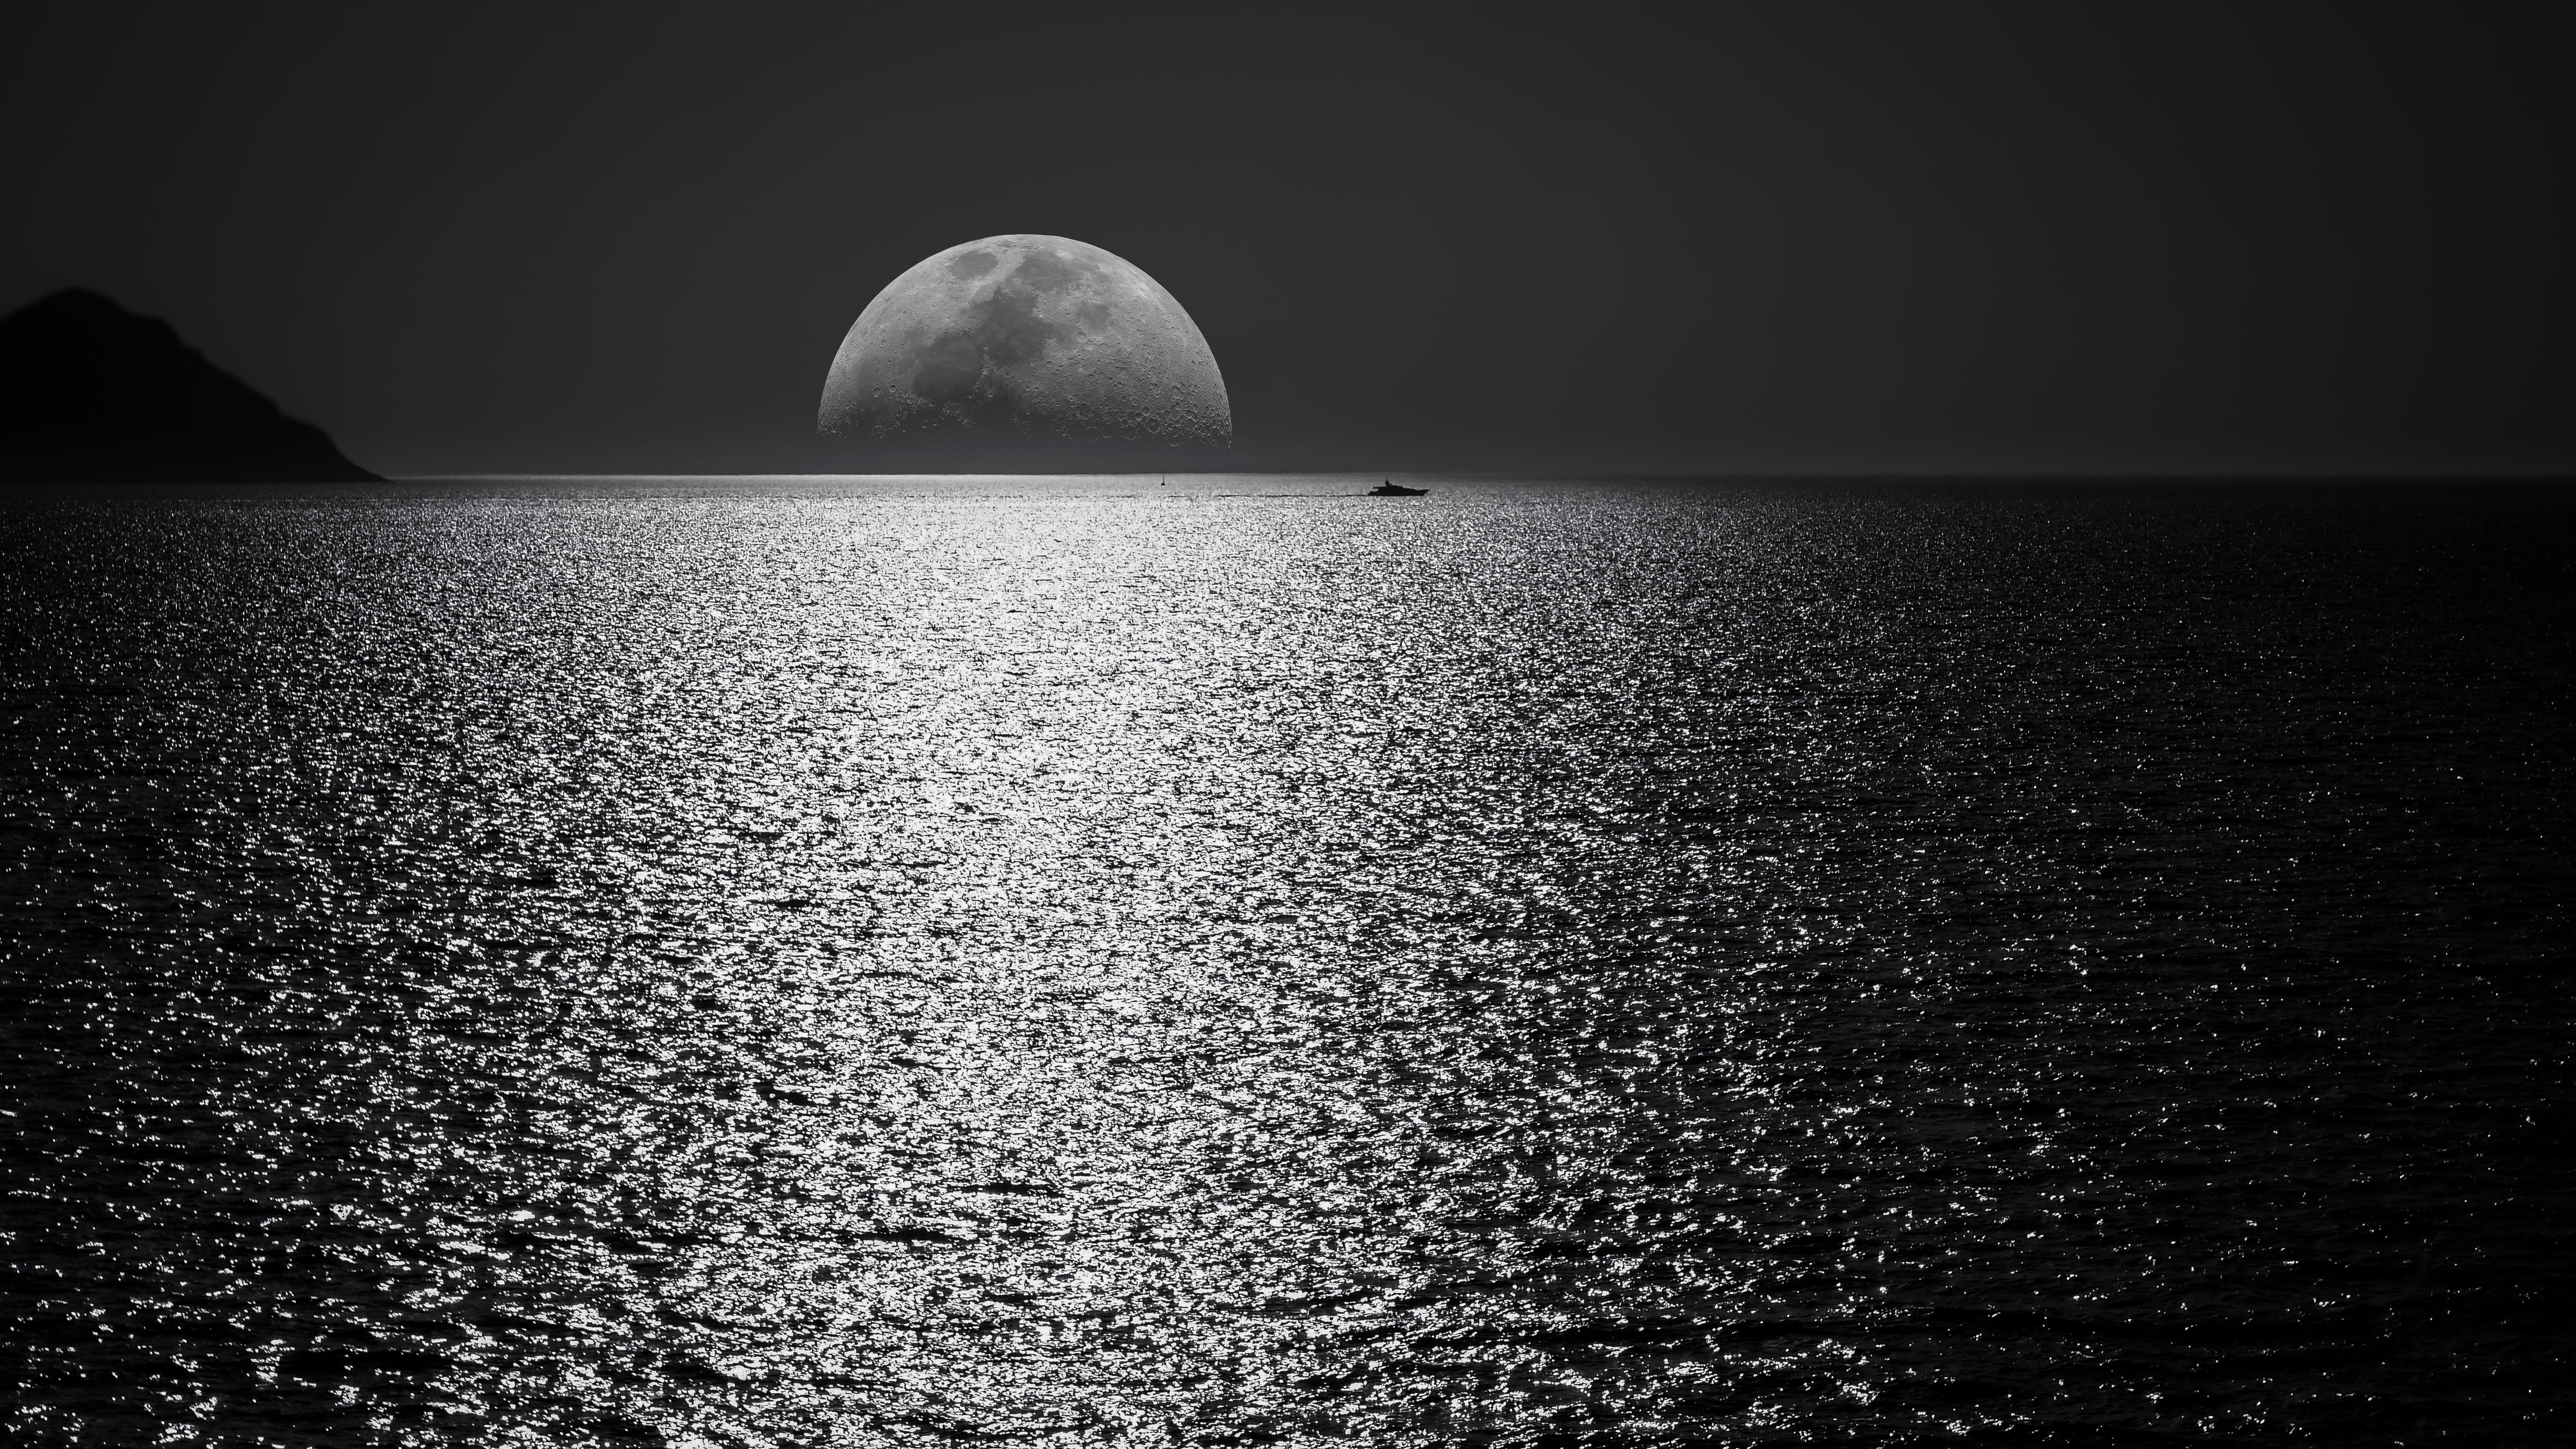 white and black moon with black skies and body of water photography during night time